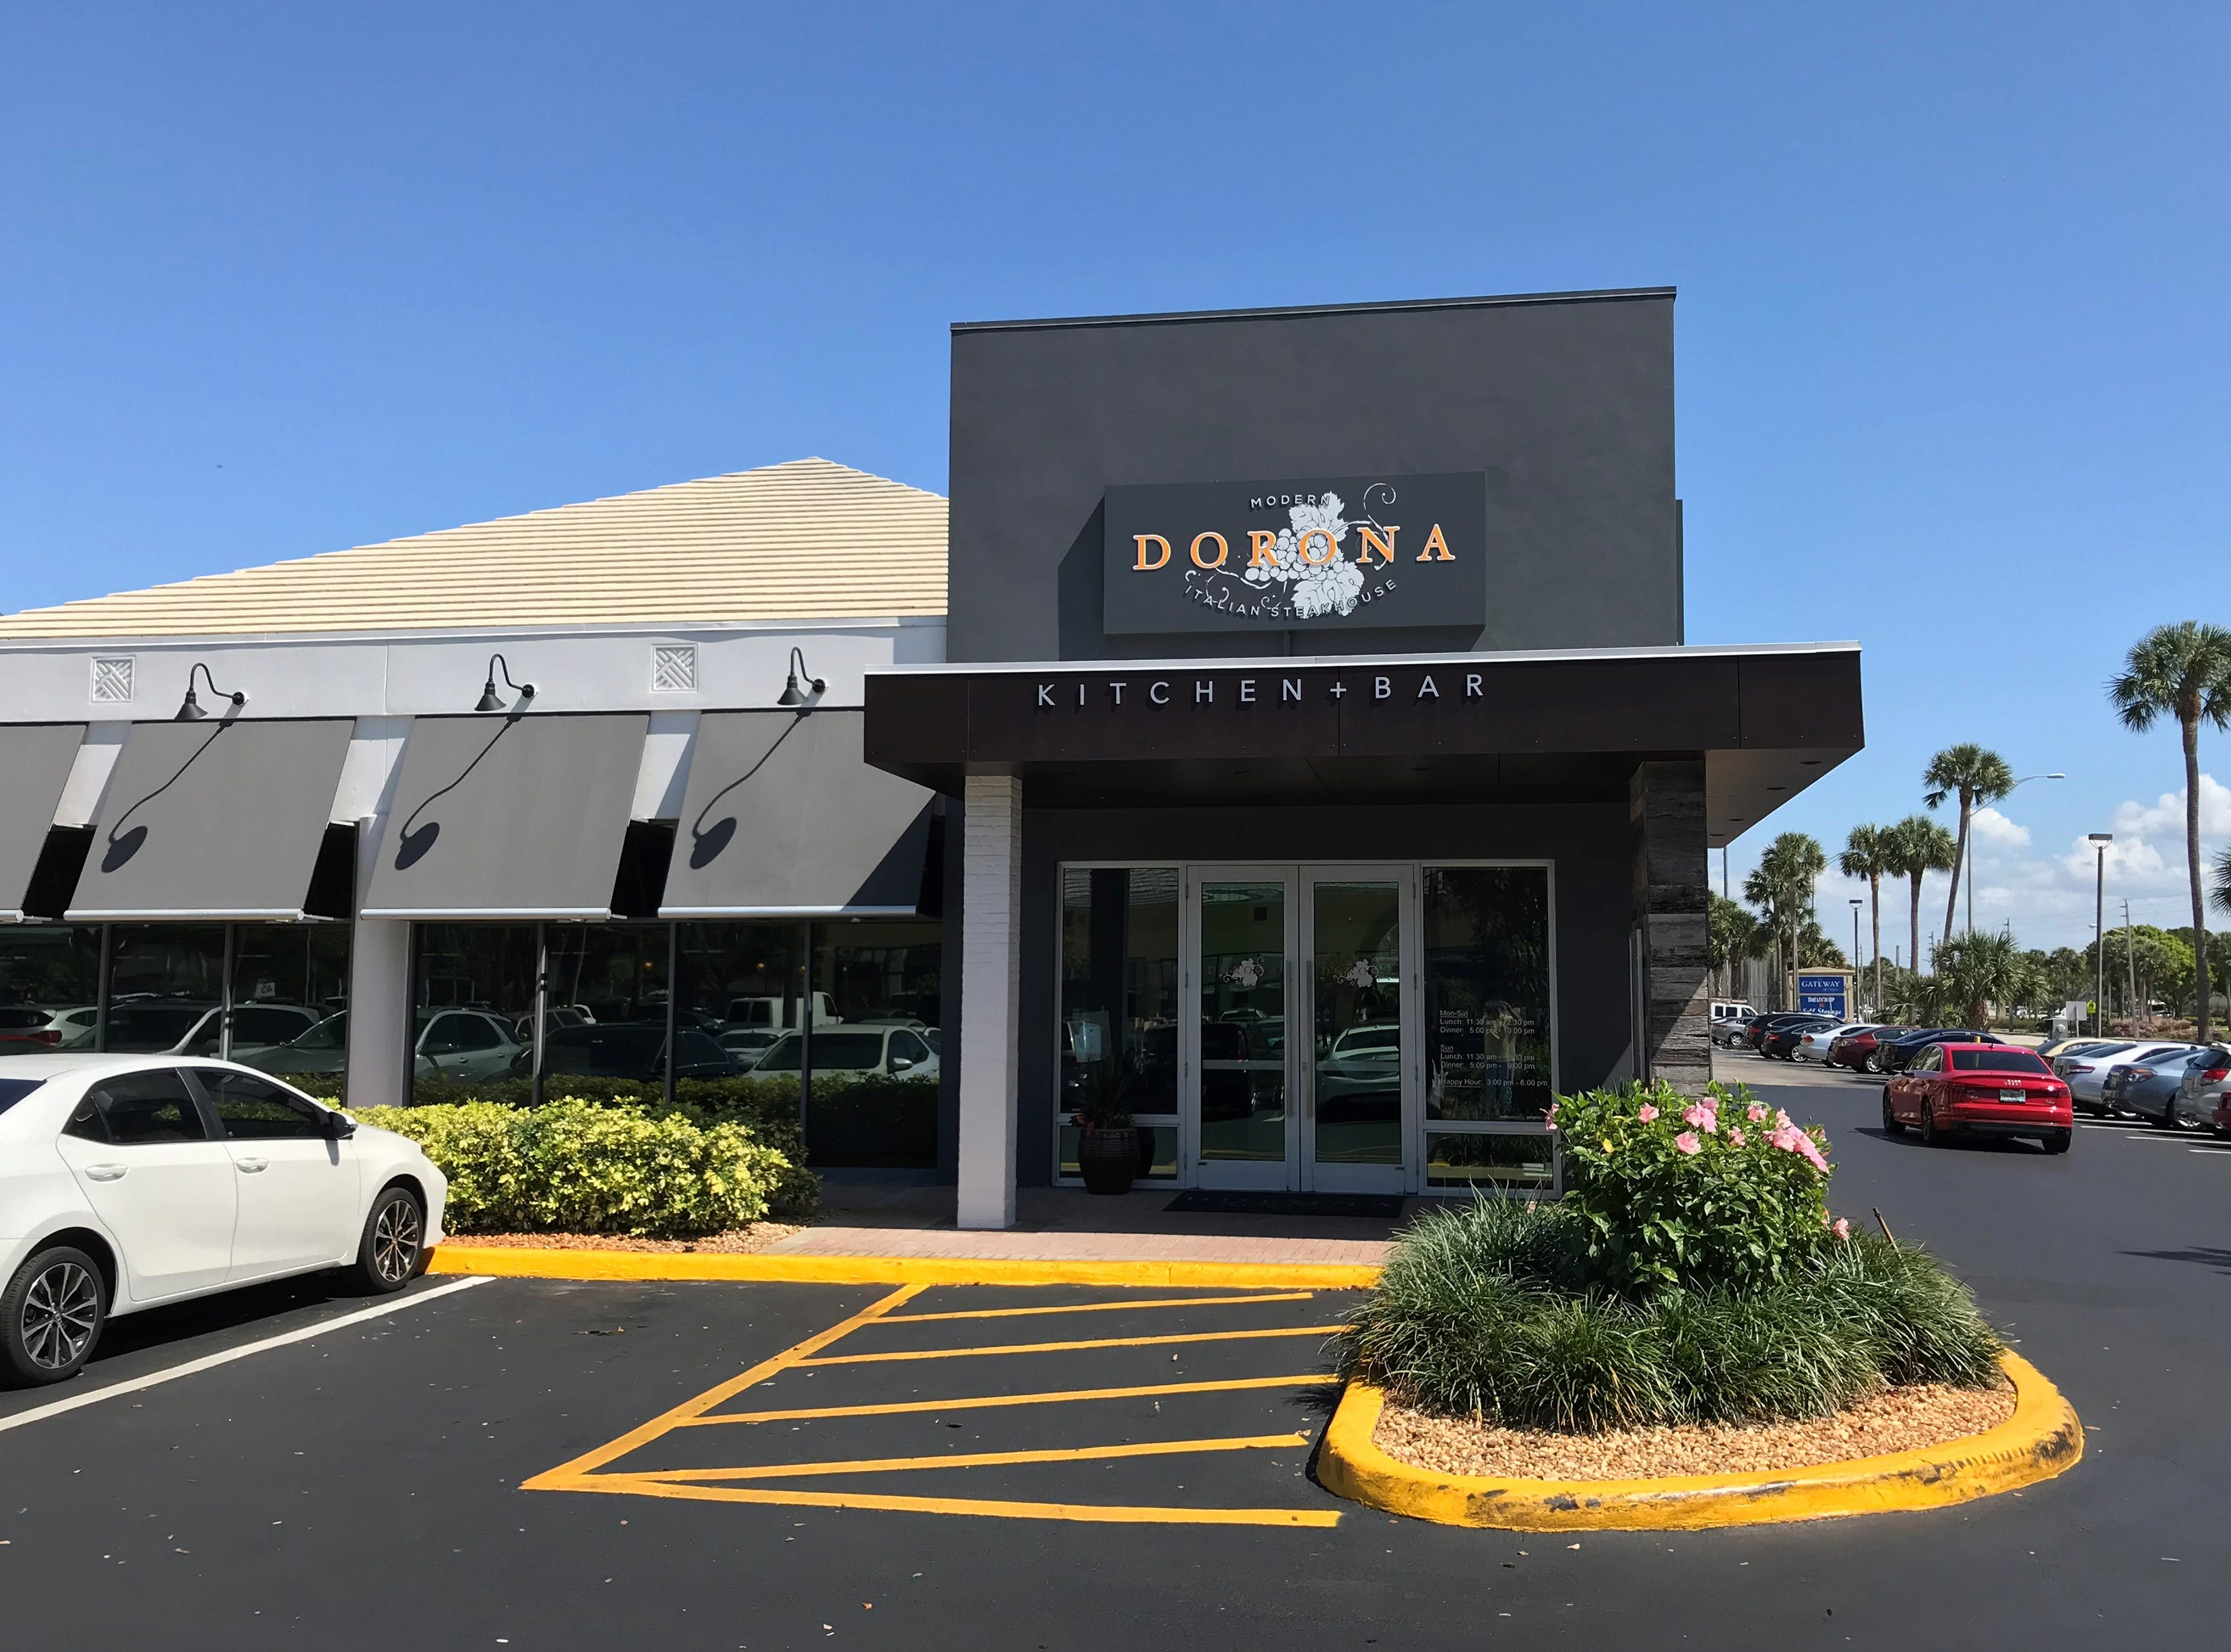 Dorona Italian steakhouse opened in January 2018 in the former space of Midtown Kitchen + Bar and TGI Friday's in Naples.